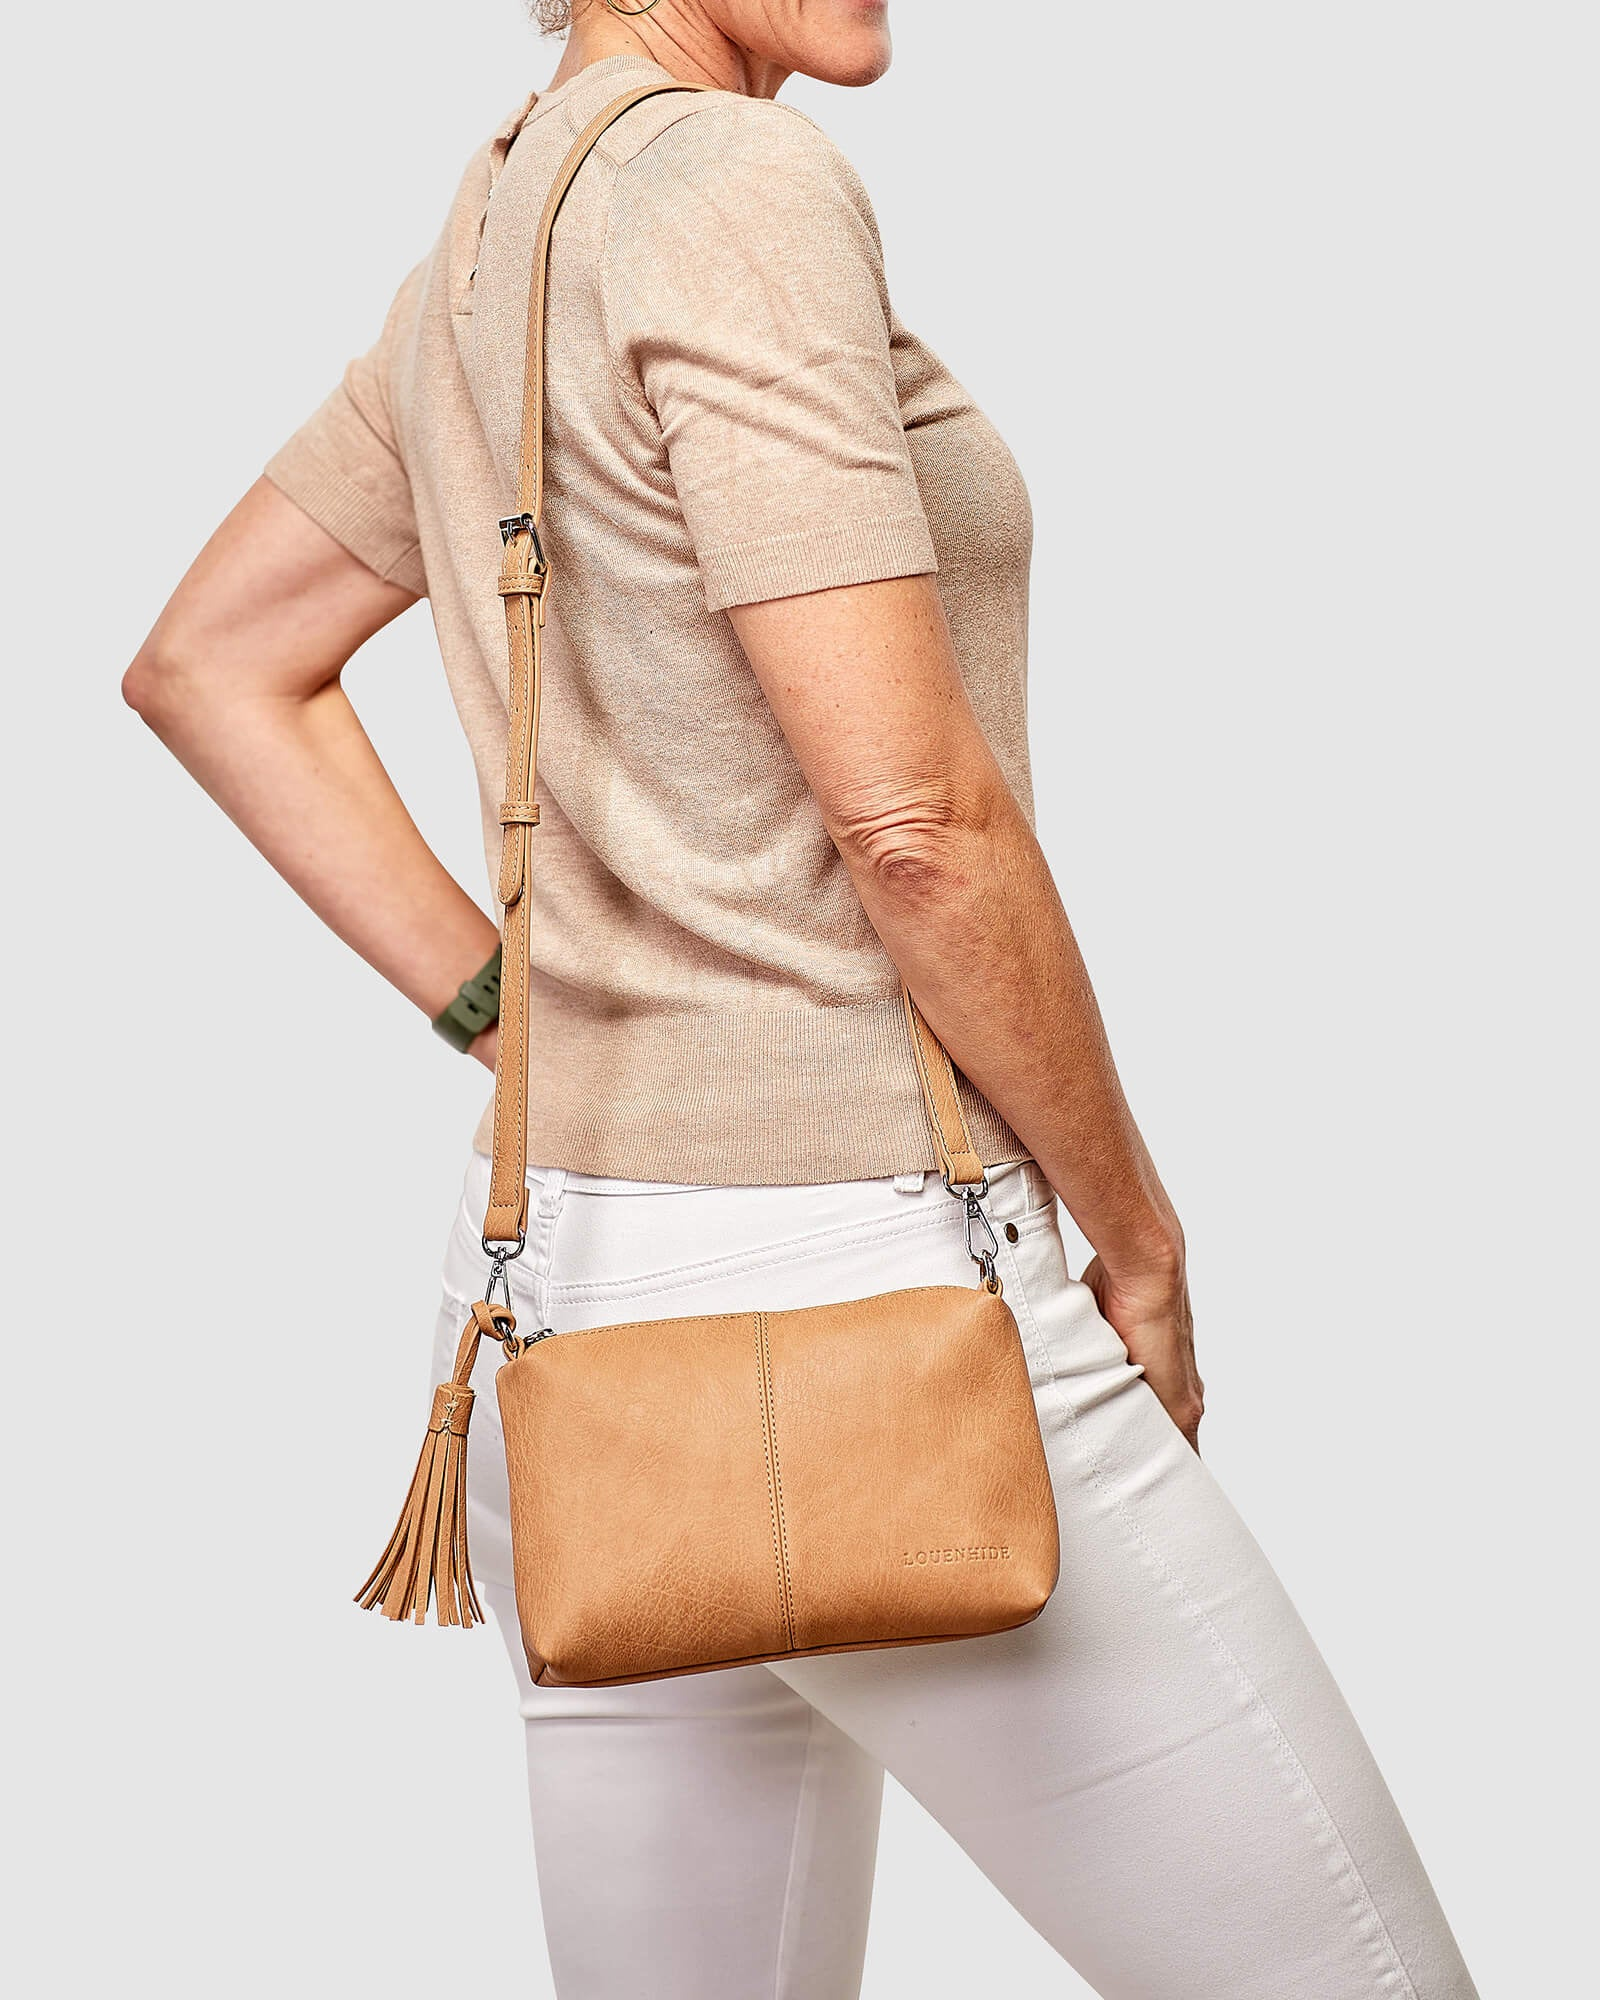 Baby Daisy Cross body Bag Louenhide Camel PU